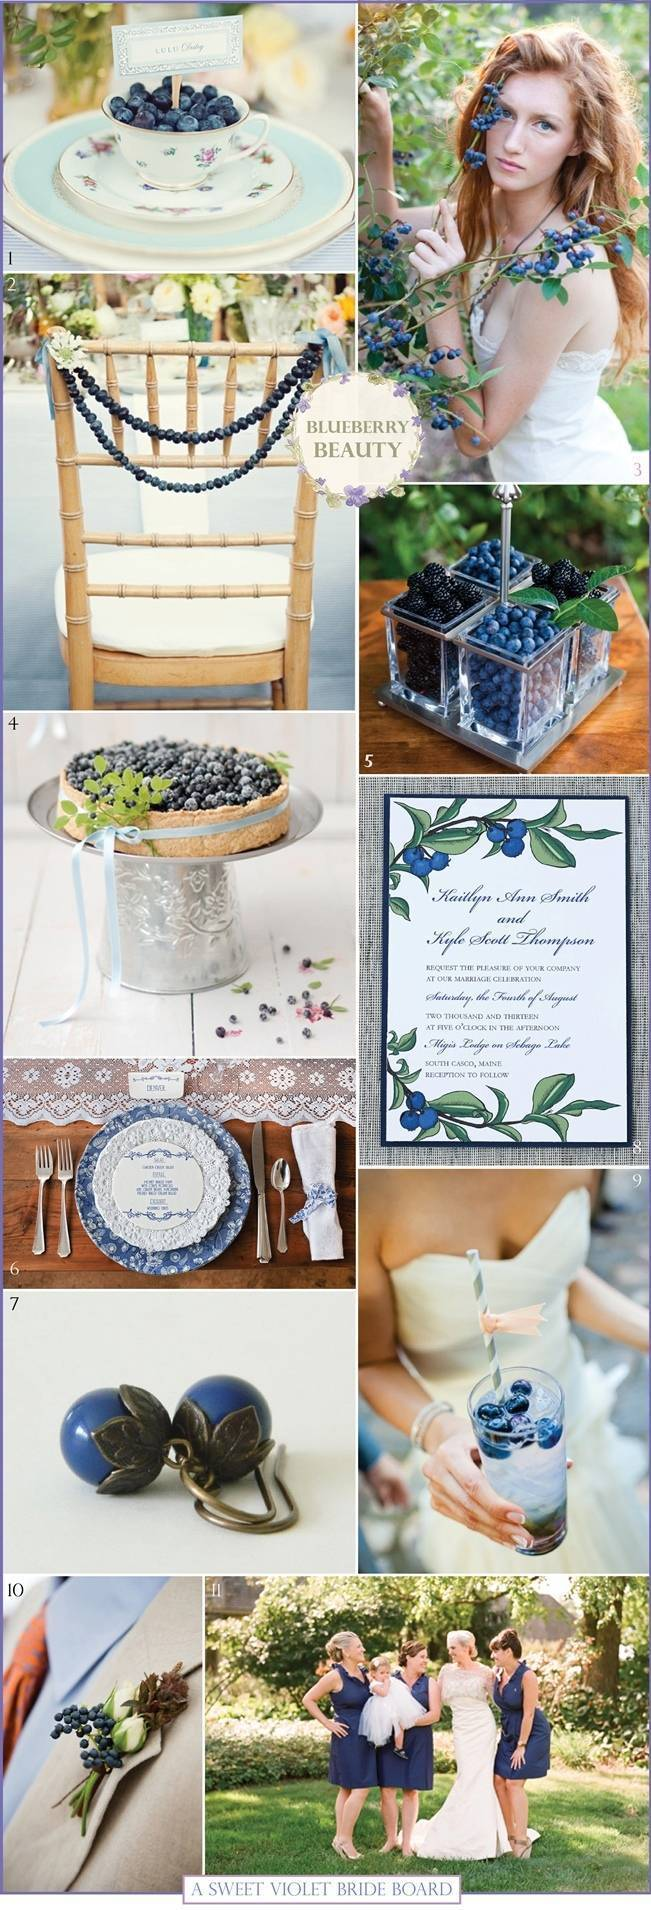 Wedding Inspiration Board #8: Blueberry Beauty